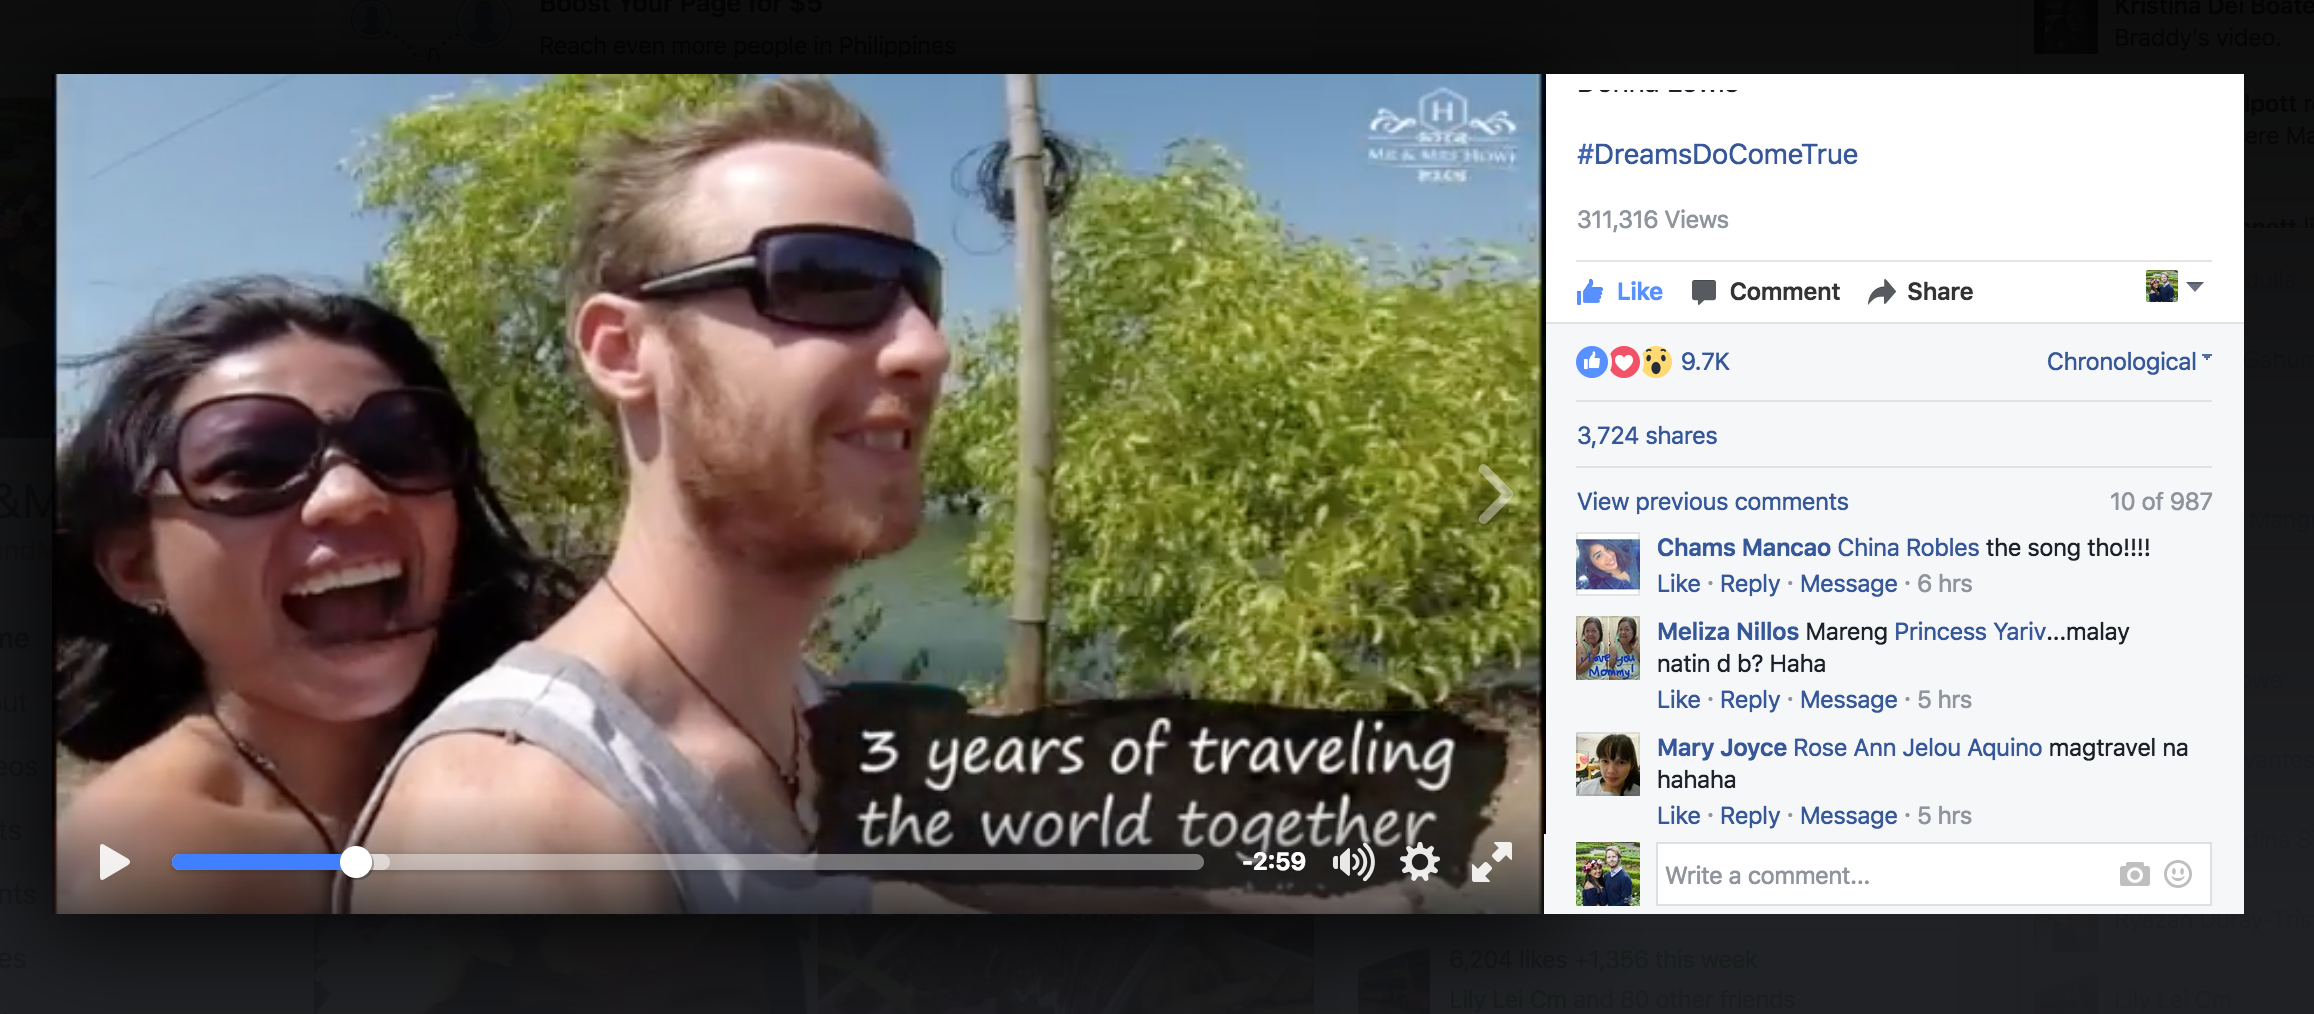 Our love story video that we boosted on Facebook for November.. it already has 311,316 views / 3,724 shares / 9,700+ Likes and 987 comments! It's our true story but if you won't pay Facebook to boost then not a lot of people would see it.. they have millions of users!